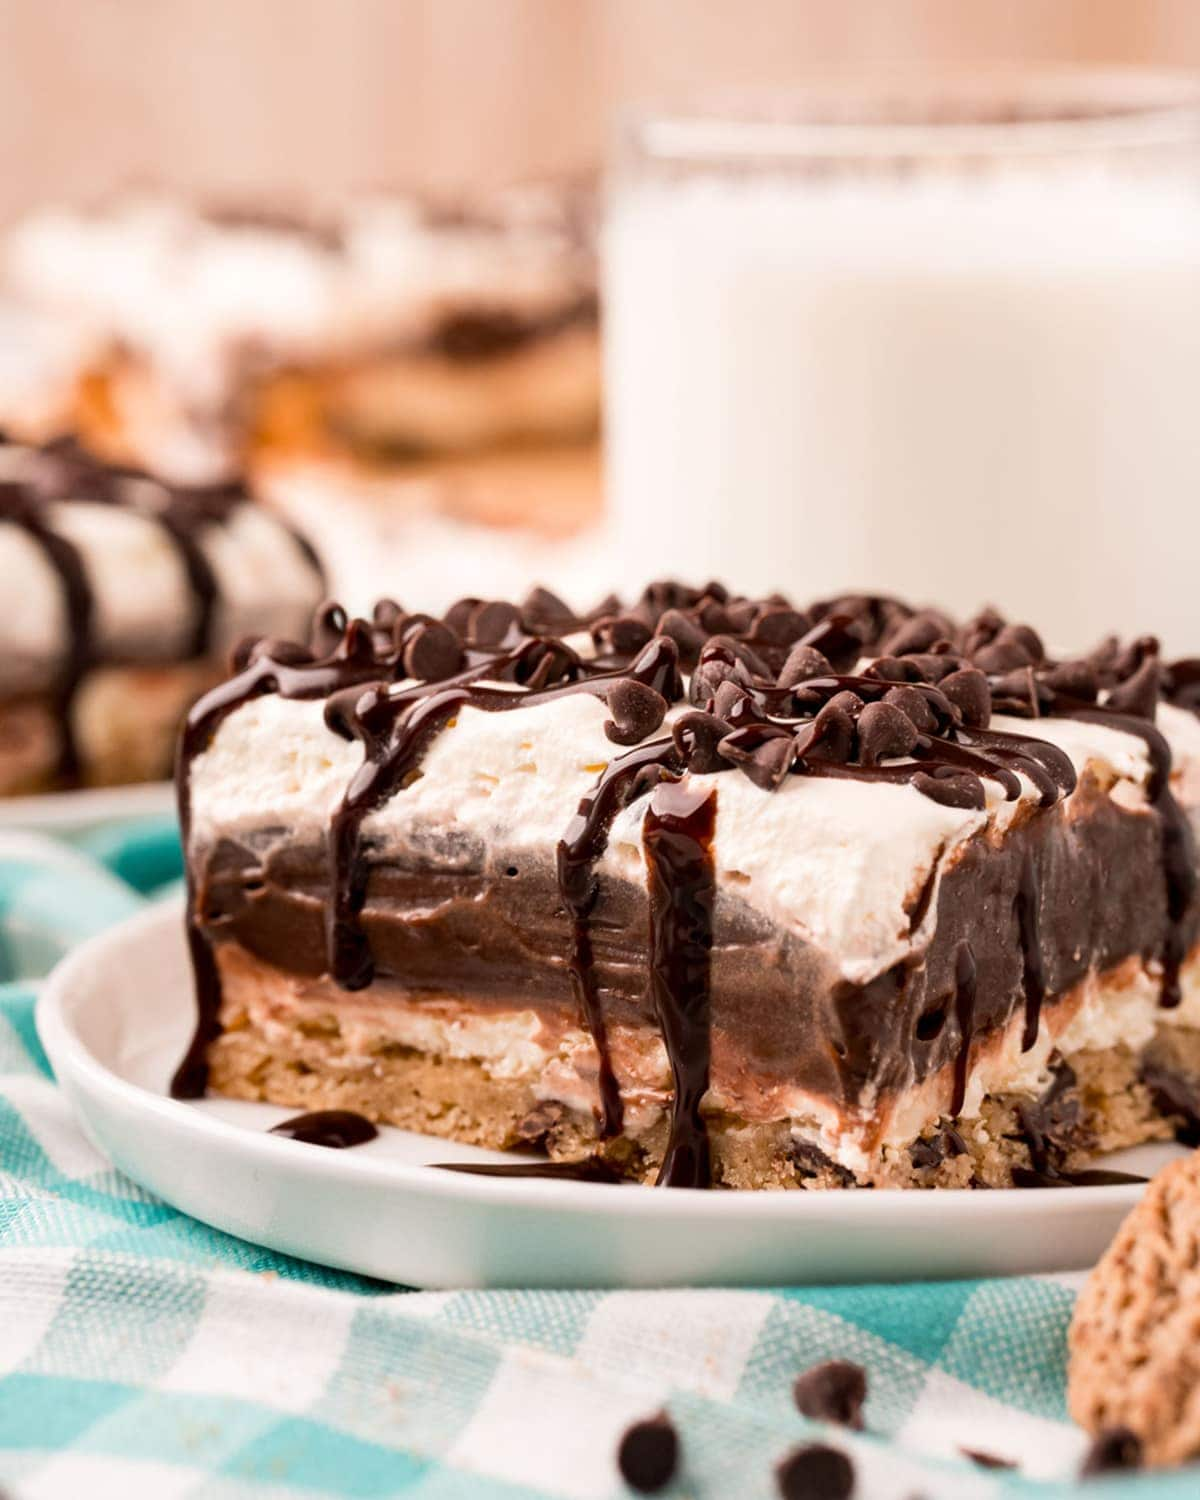 A piece of layered chocolate hip cookie delight on a small plate, topped with mini chocolate chips, and drizzled with chocolate syrup.